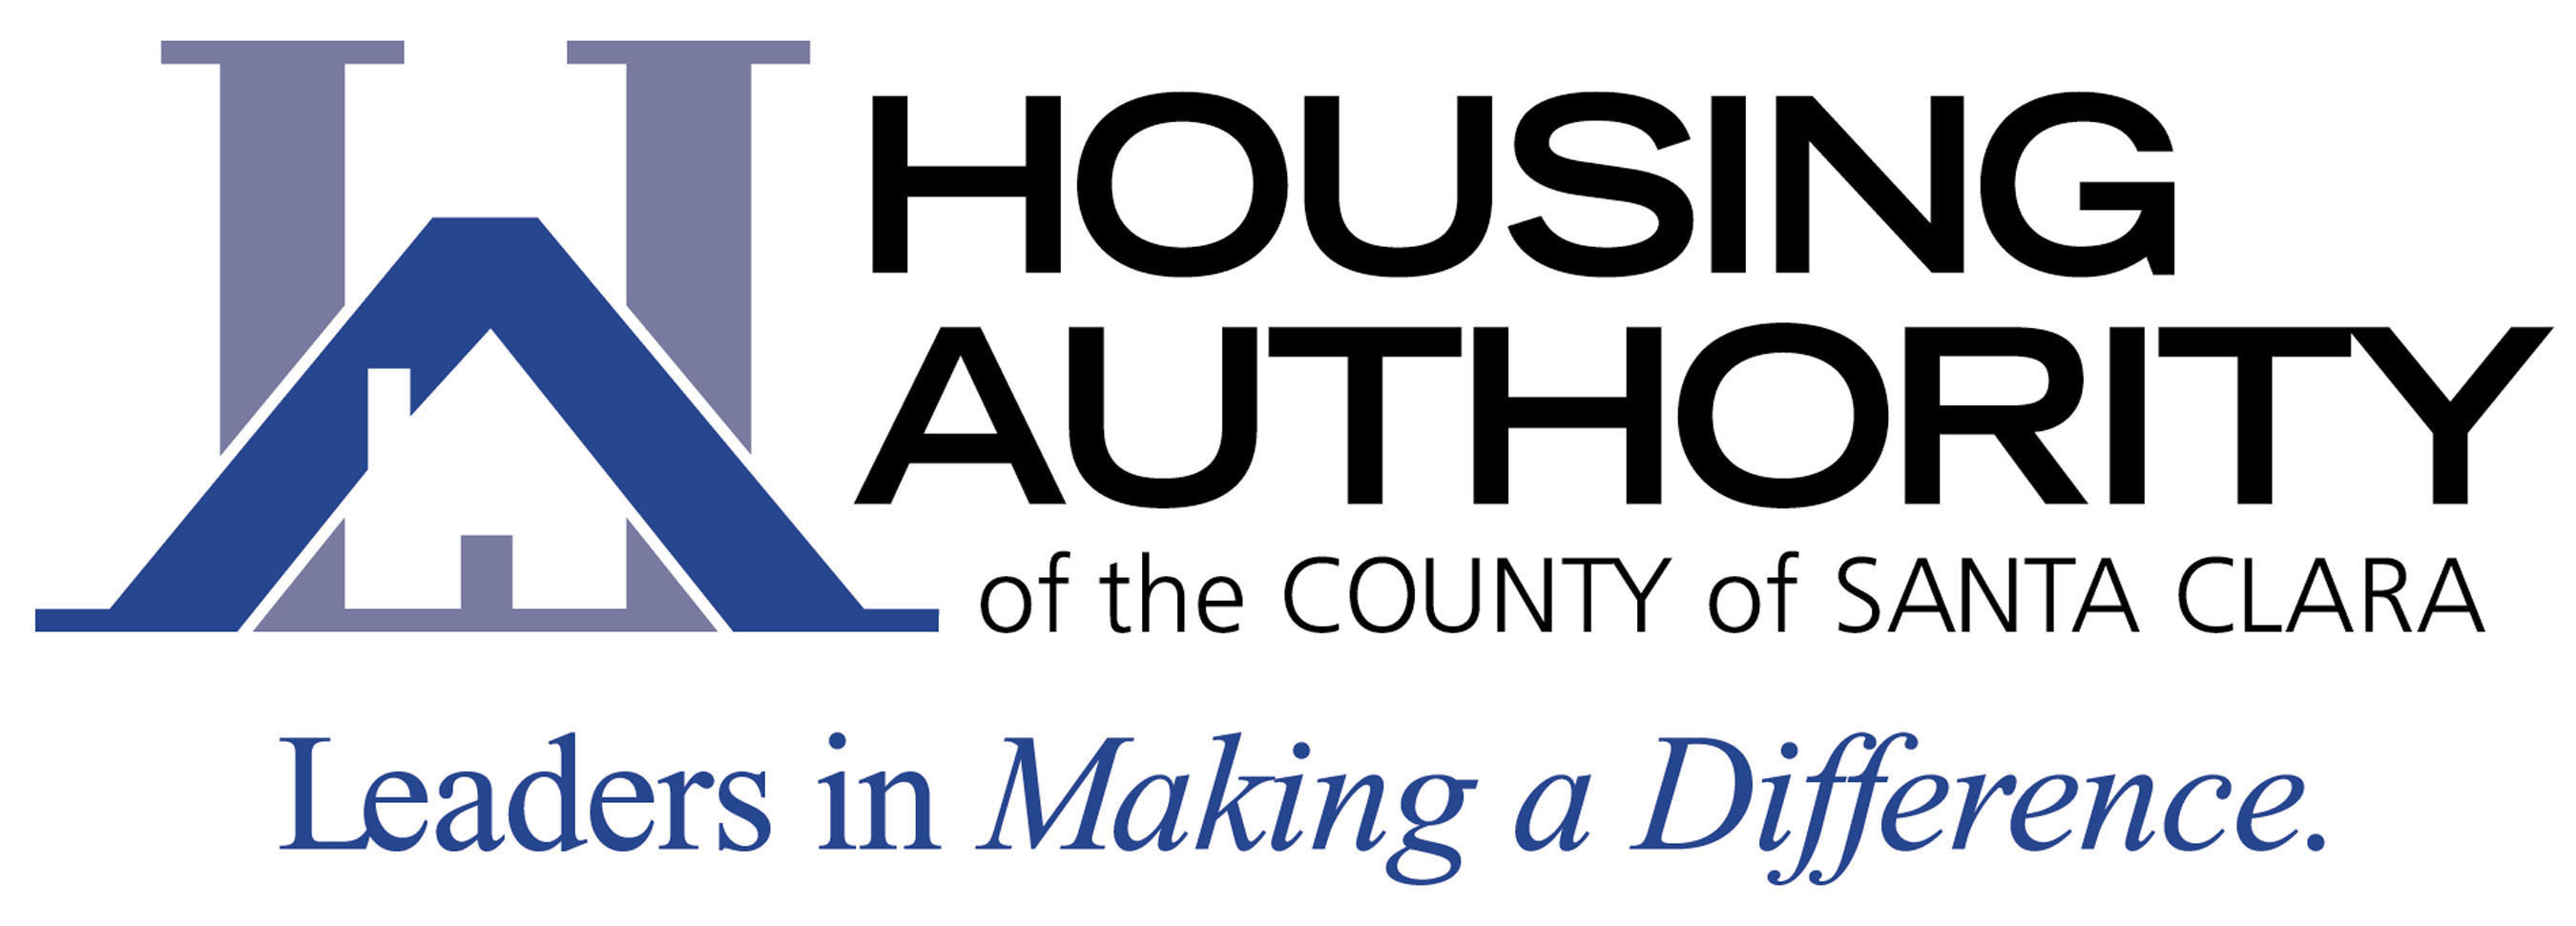 Housing Authority of the County of Santa Clara Logo.